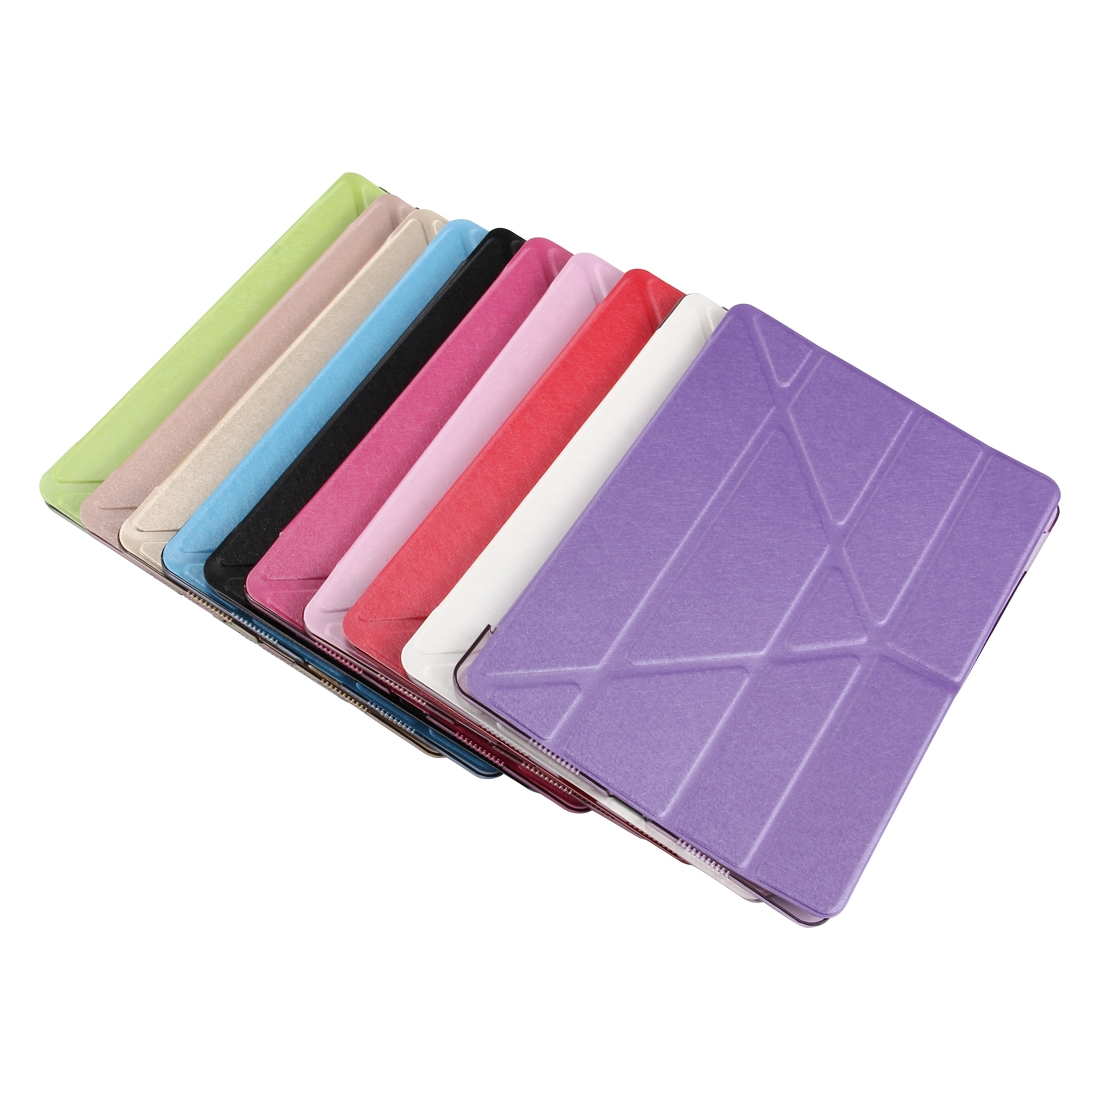 Silk Textured Leather iPad Air 3 Case (10.5 Inch) with Quad-Fold Holder w/ Auto Sleep (Pink)